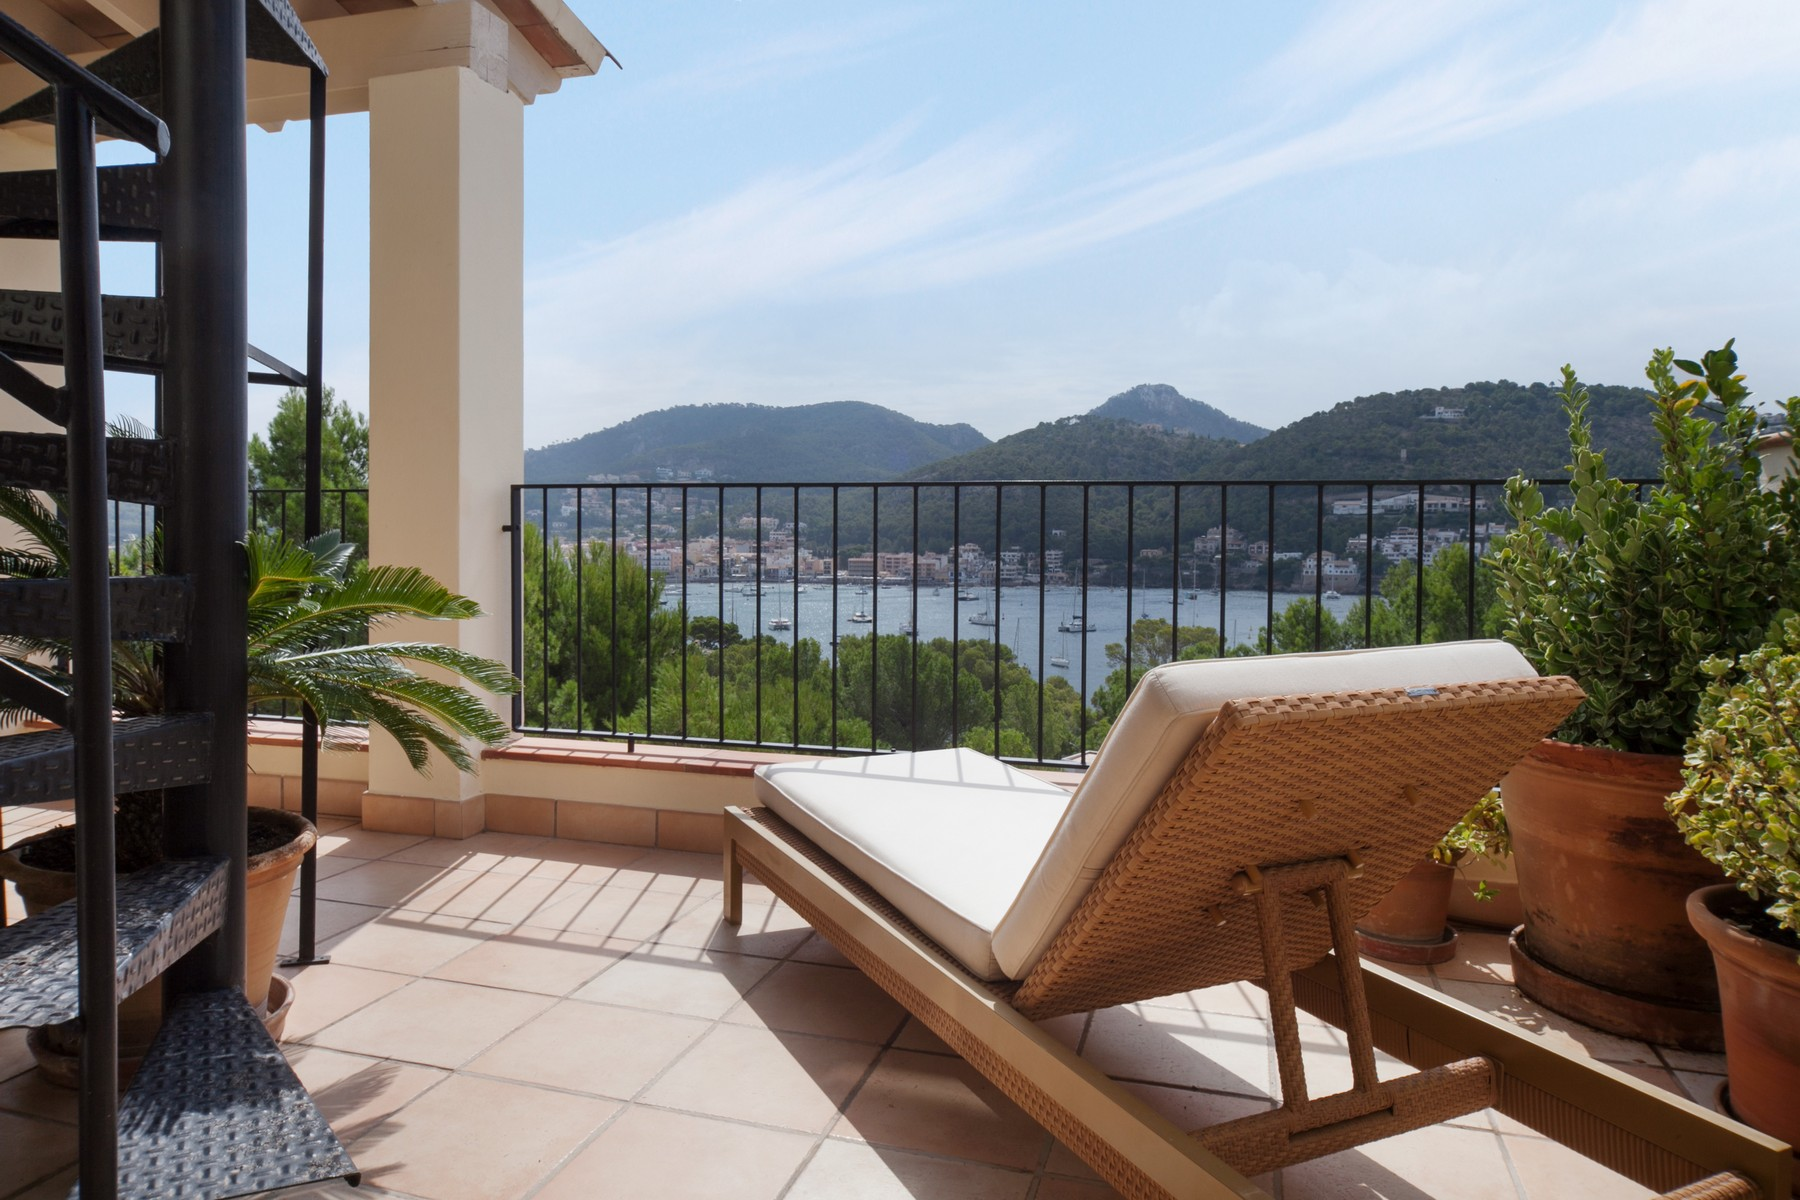 Apartment for Sale at Penthouse with ideal location in Port Andratx Port Andratx, Mallorca, 07157 Spain